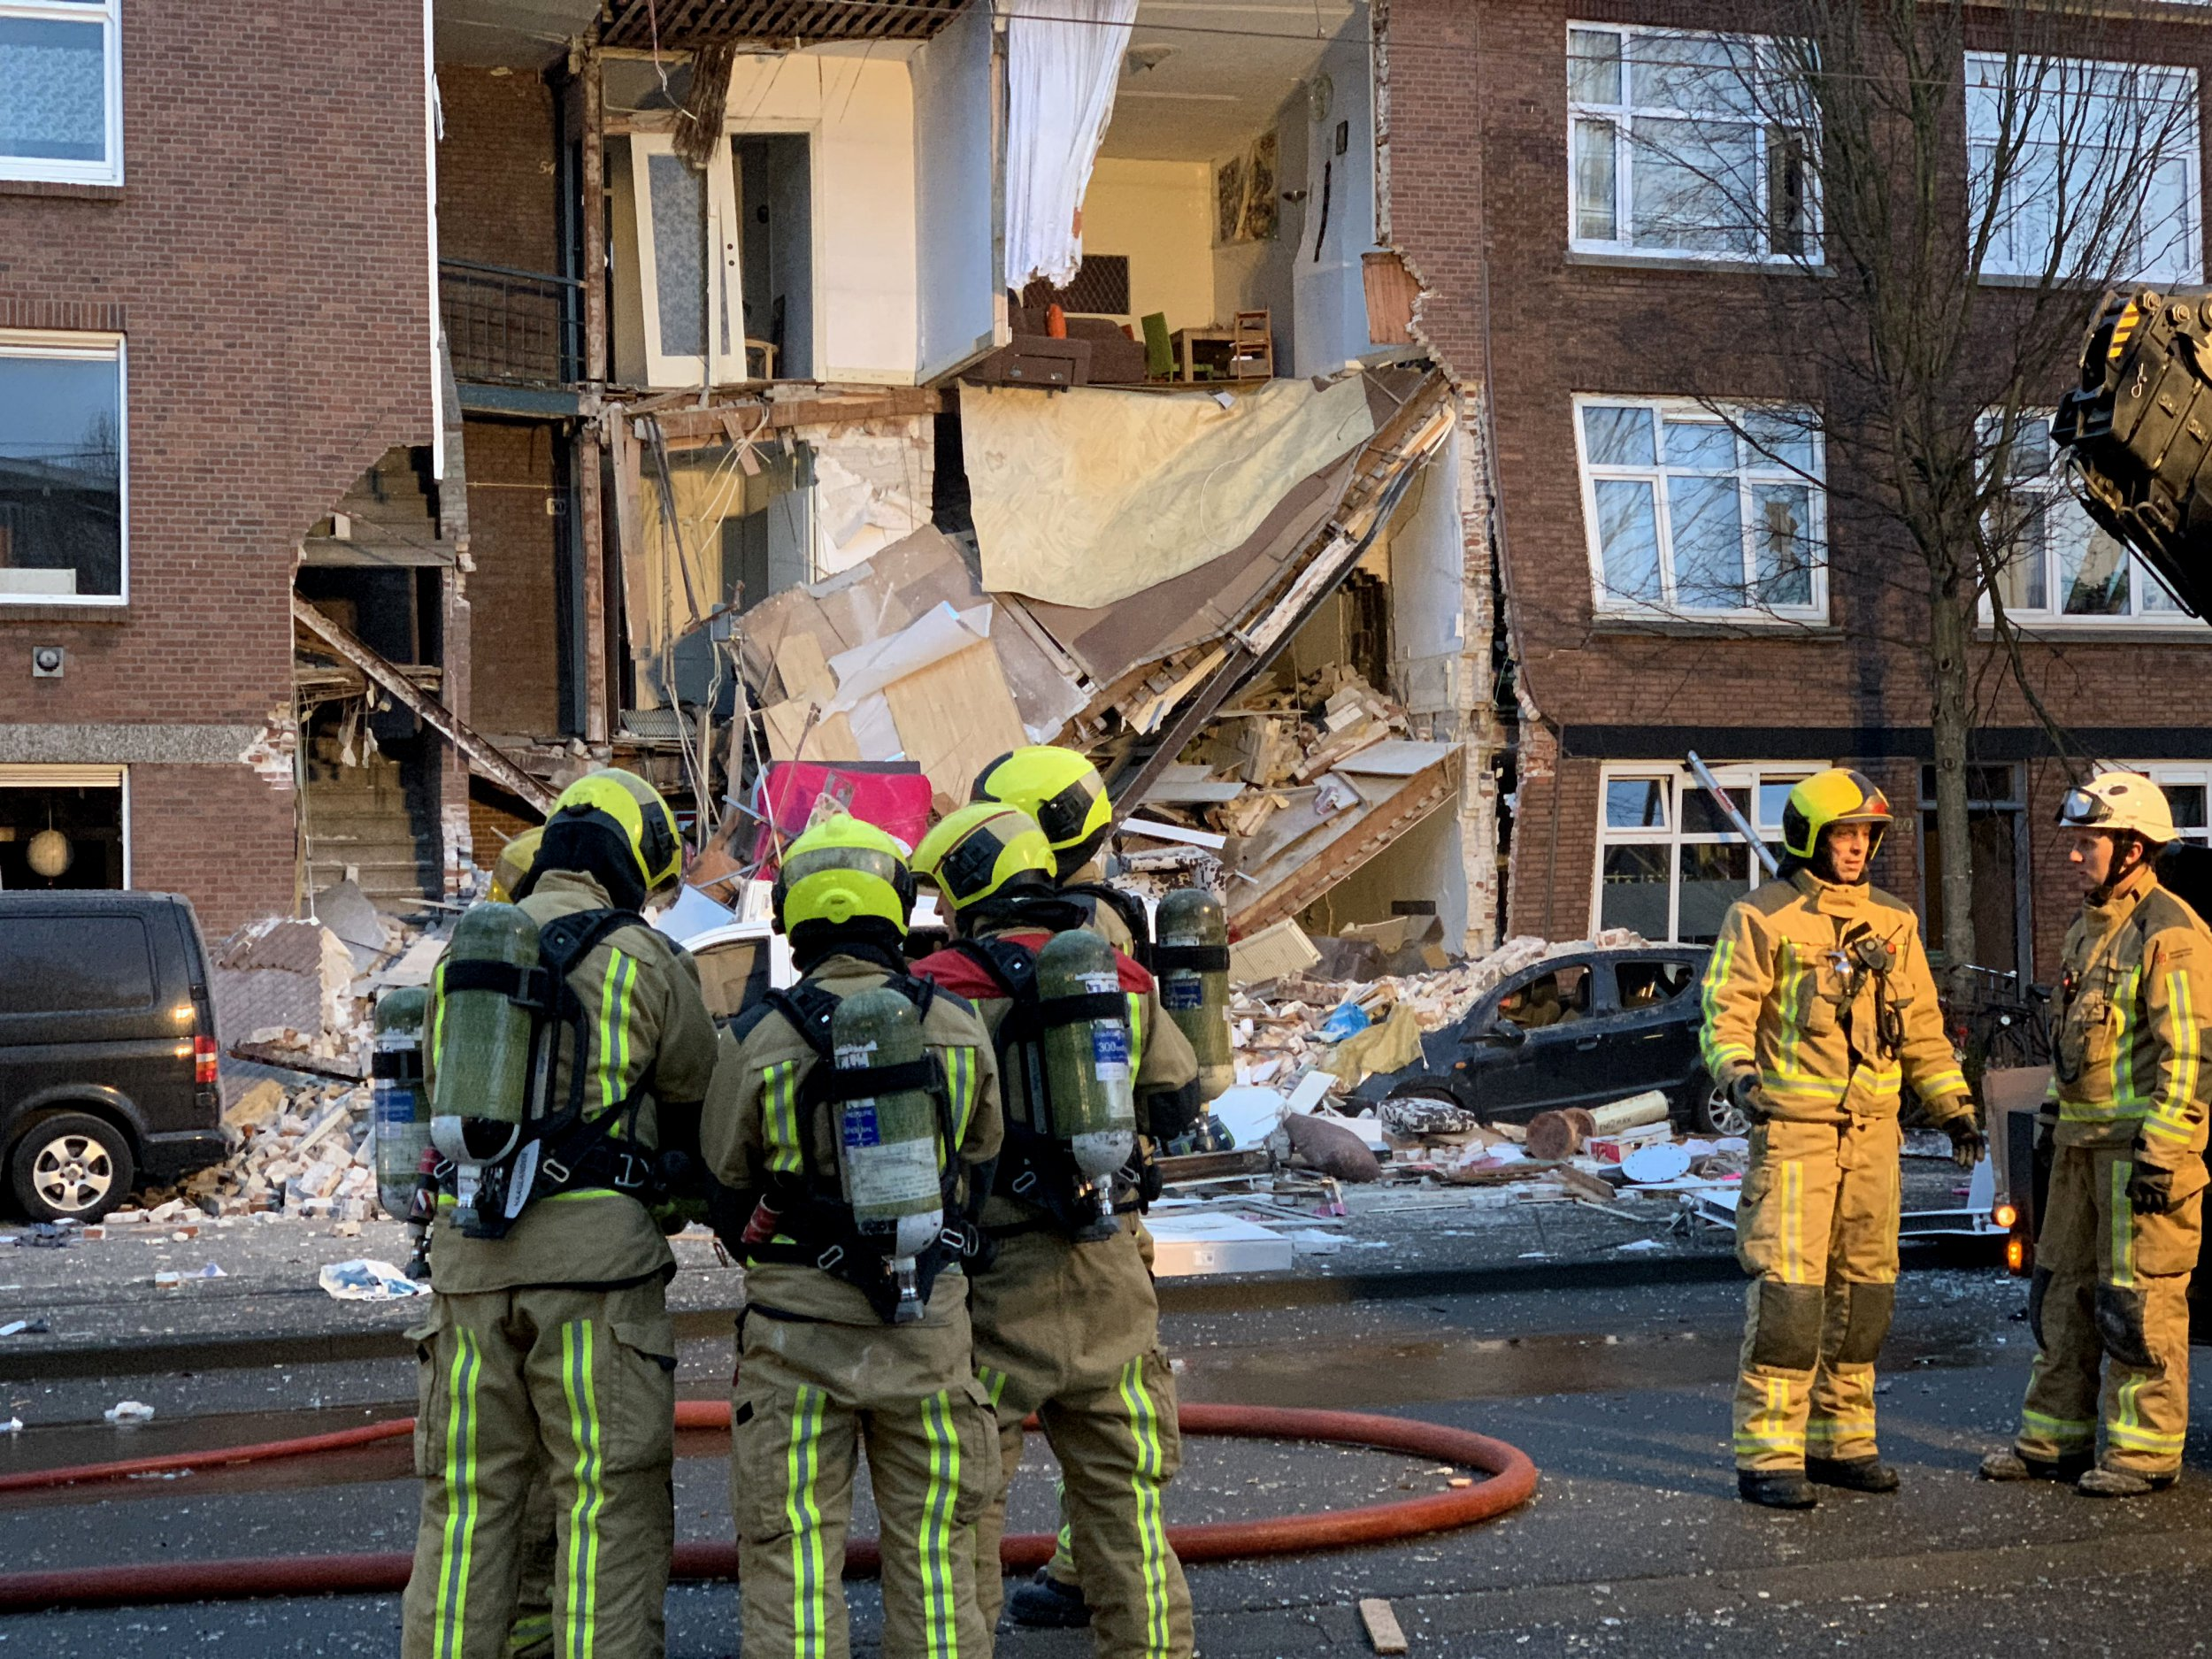 Authorities respond after a three-story home collapsed in The Hague, Netherlands on Sunday, Jan. 27, 2019. Police at the scene said a gas explosion was being explored as a possible cause of what tore off the home's front and demolished the dwelling in a residential neighborhood on Sunday. (AP Photo/Wong Maye-E)